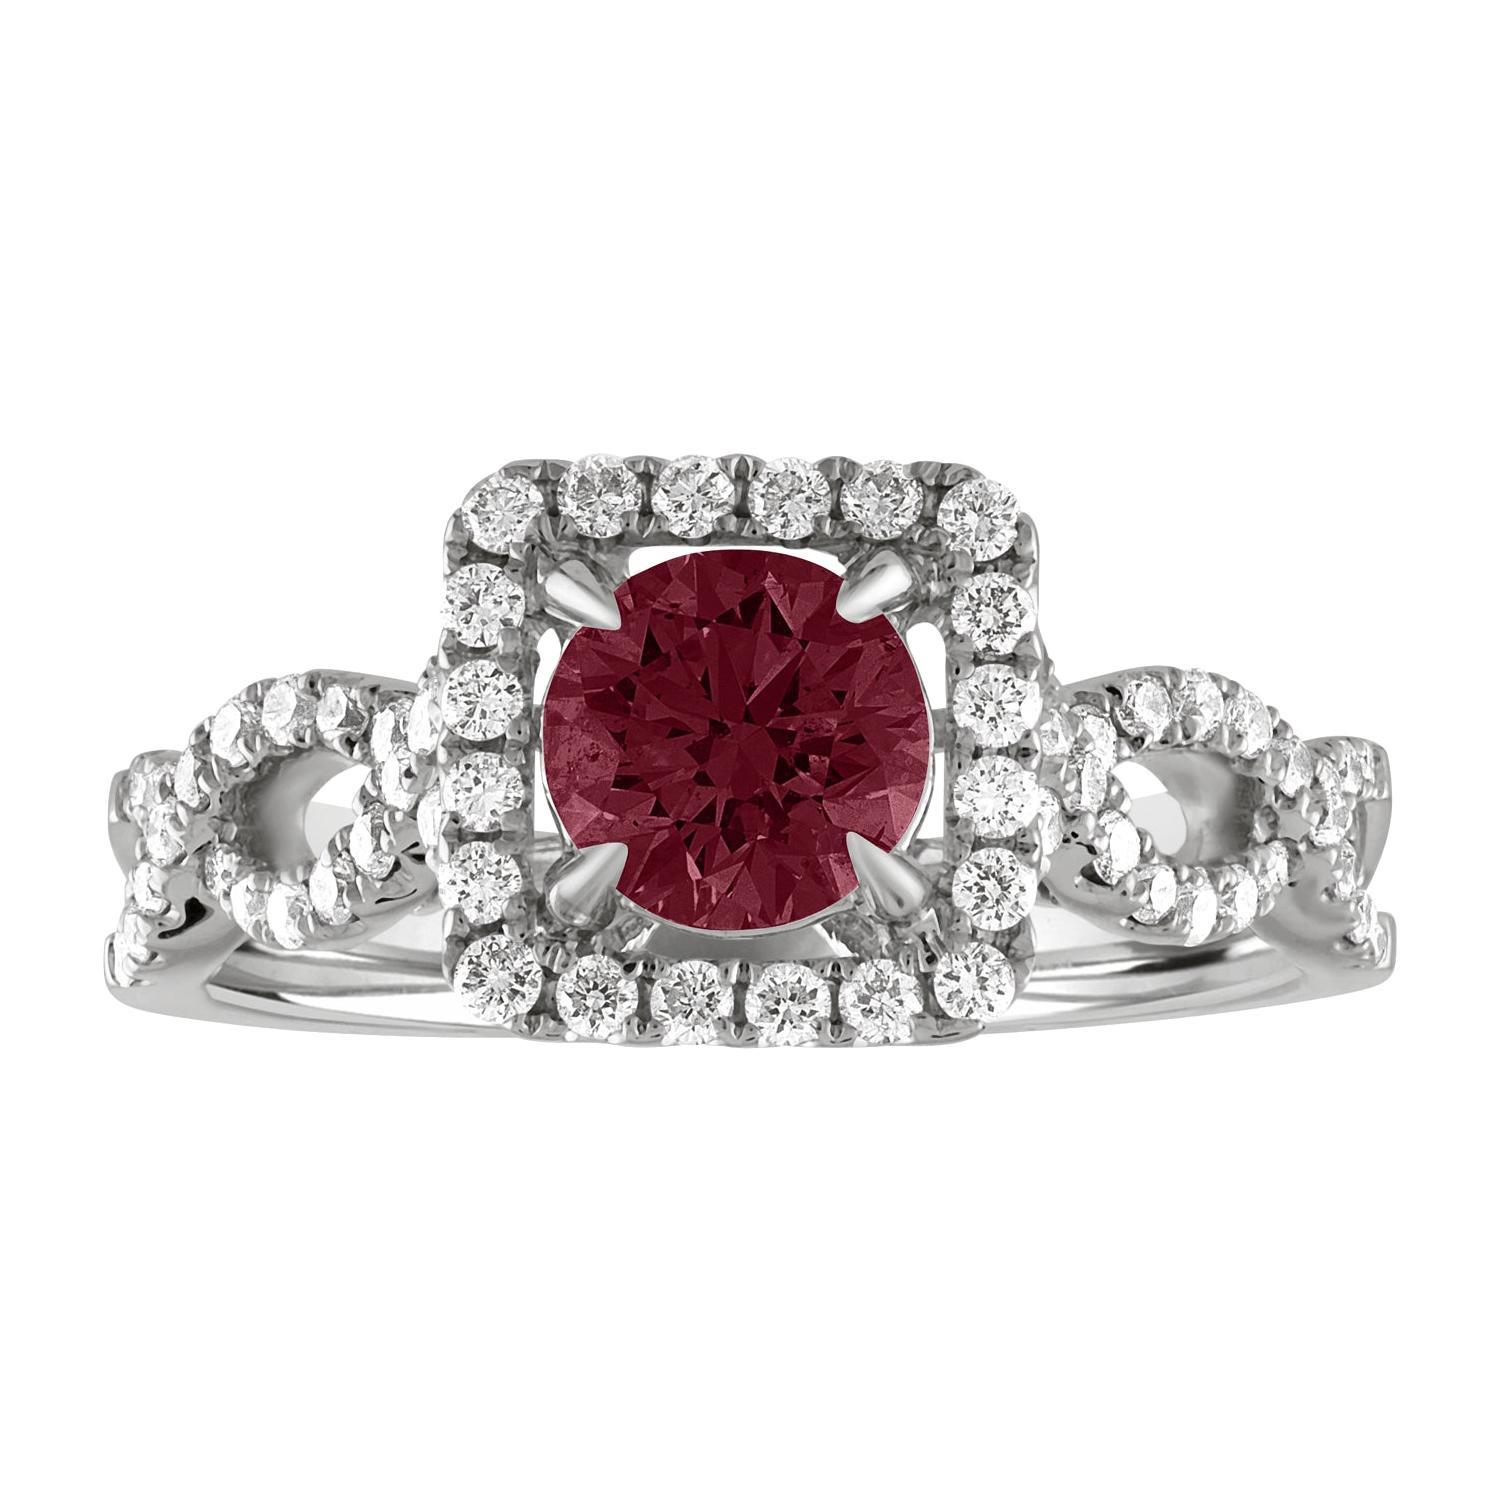 AGL Certified 1.04 Carat Round Ruby Diamond Gold Ring